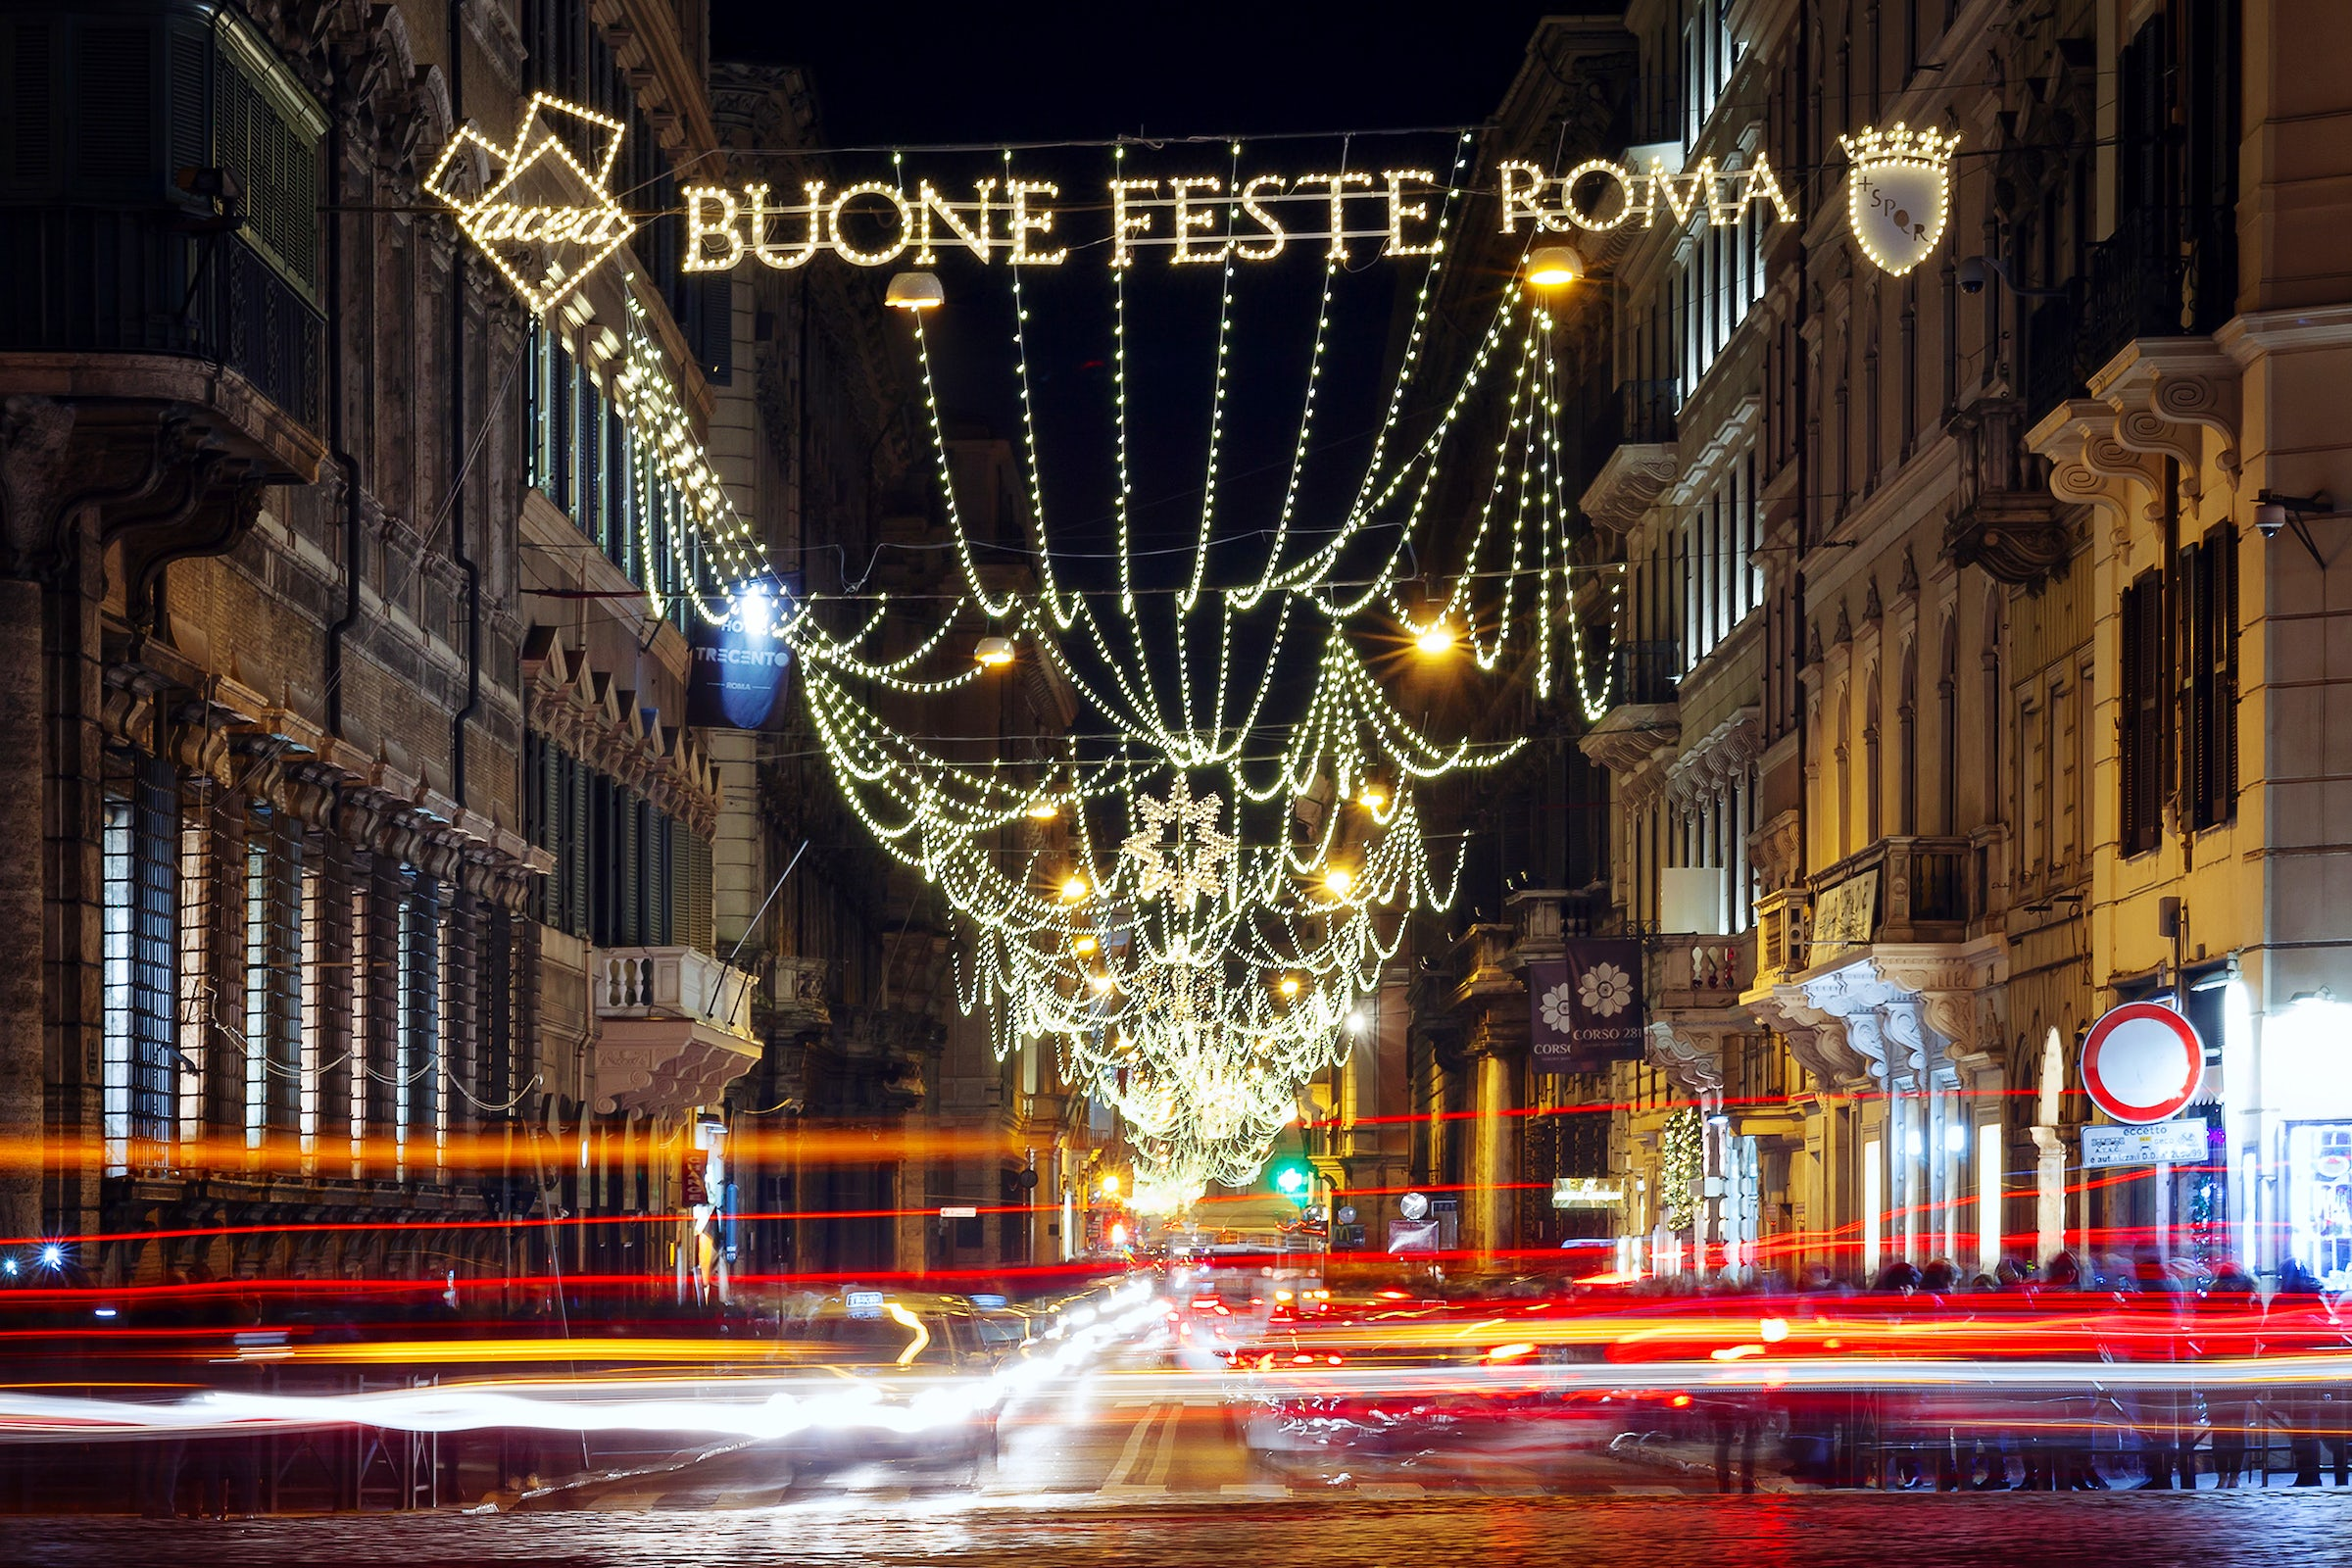 Where Not To Go For Christmas In Rome